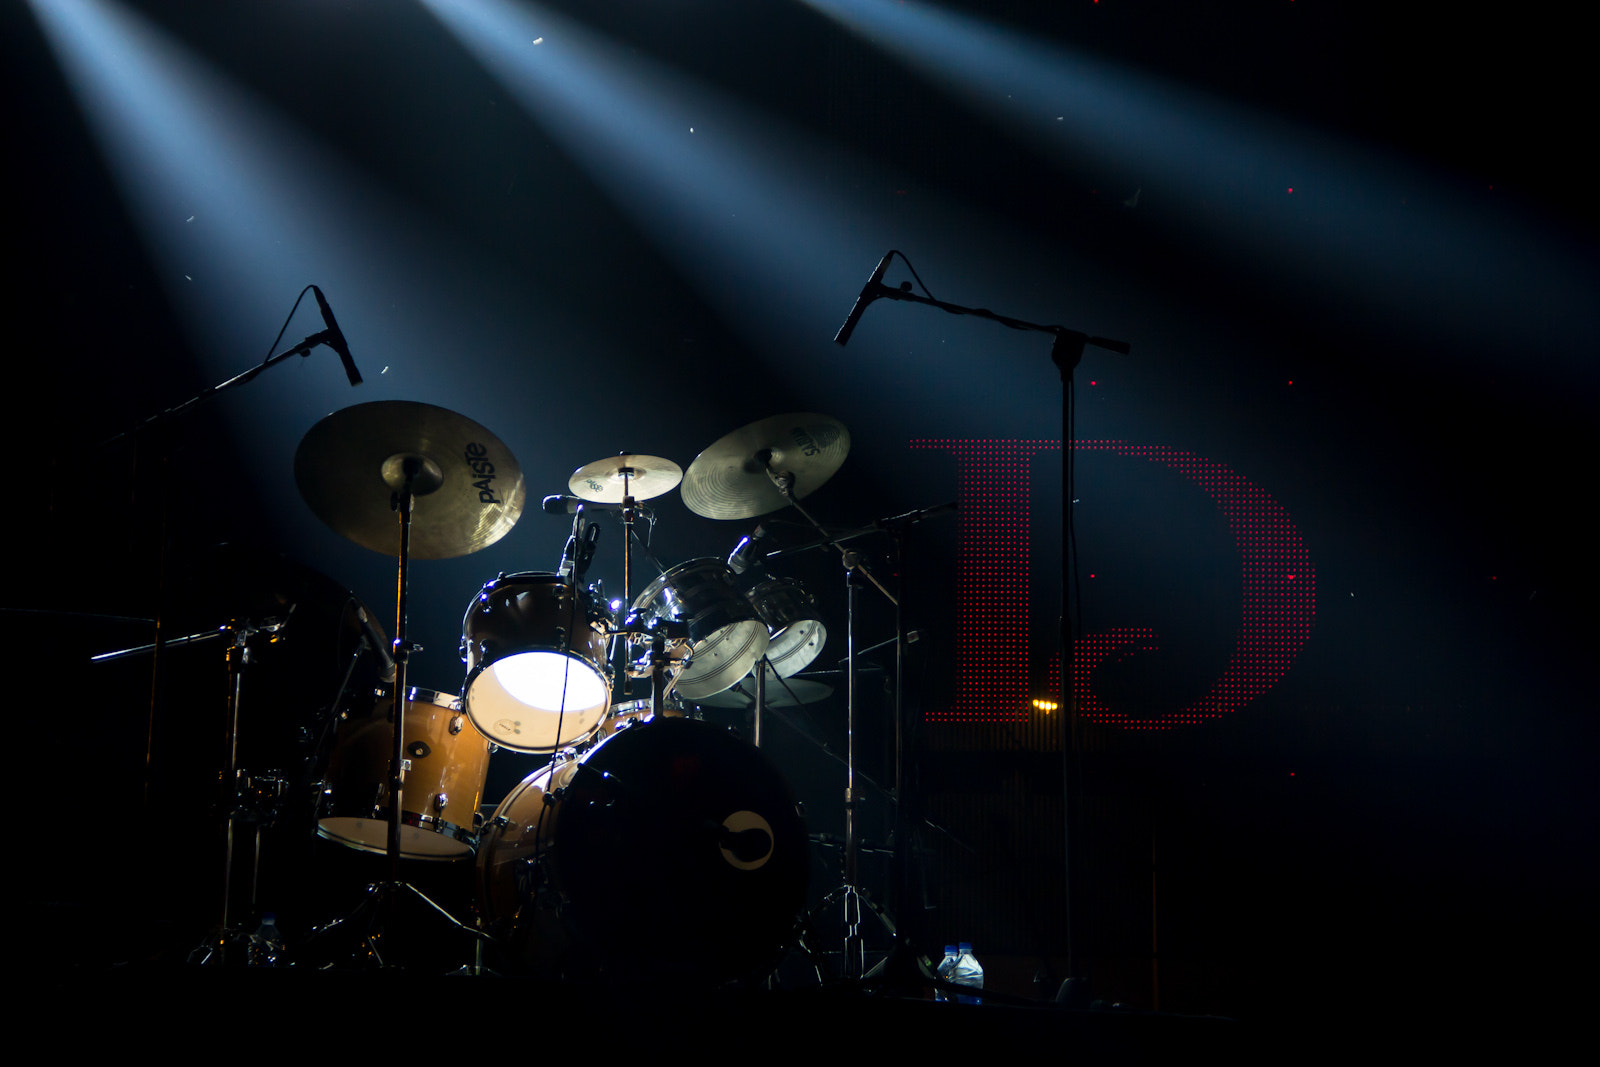 Photograph Drums @ Concert by Himanshu Sachdeva on 500px